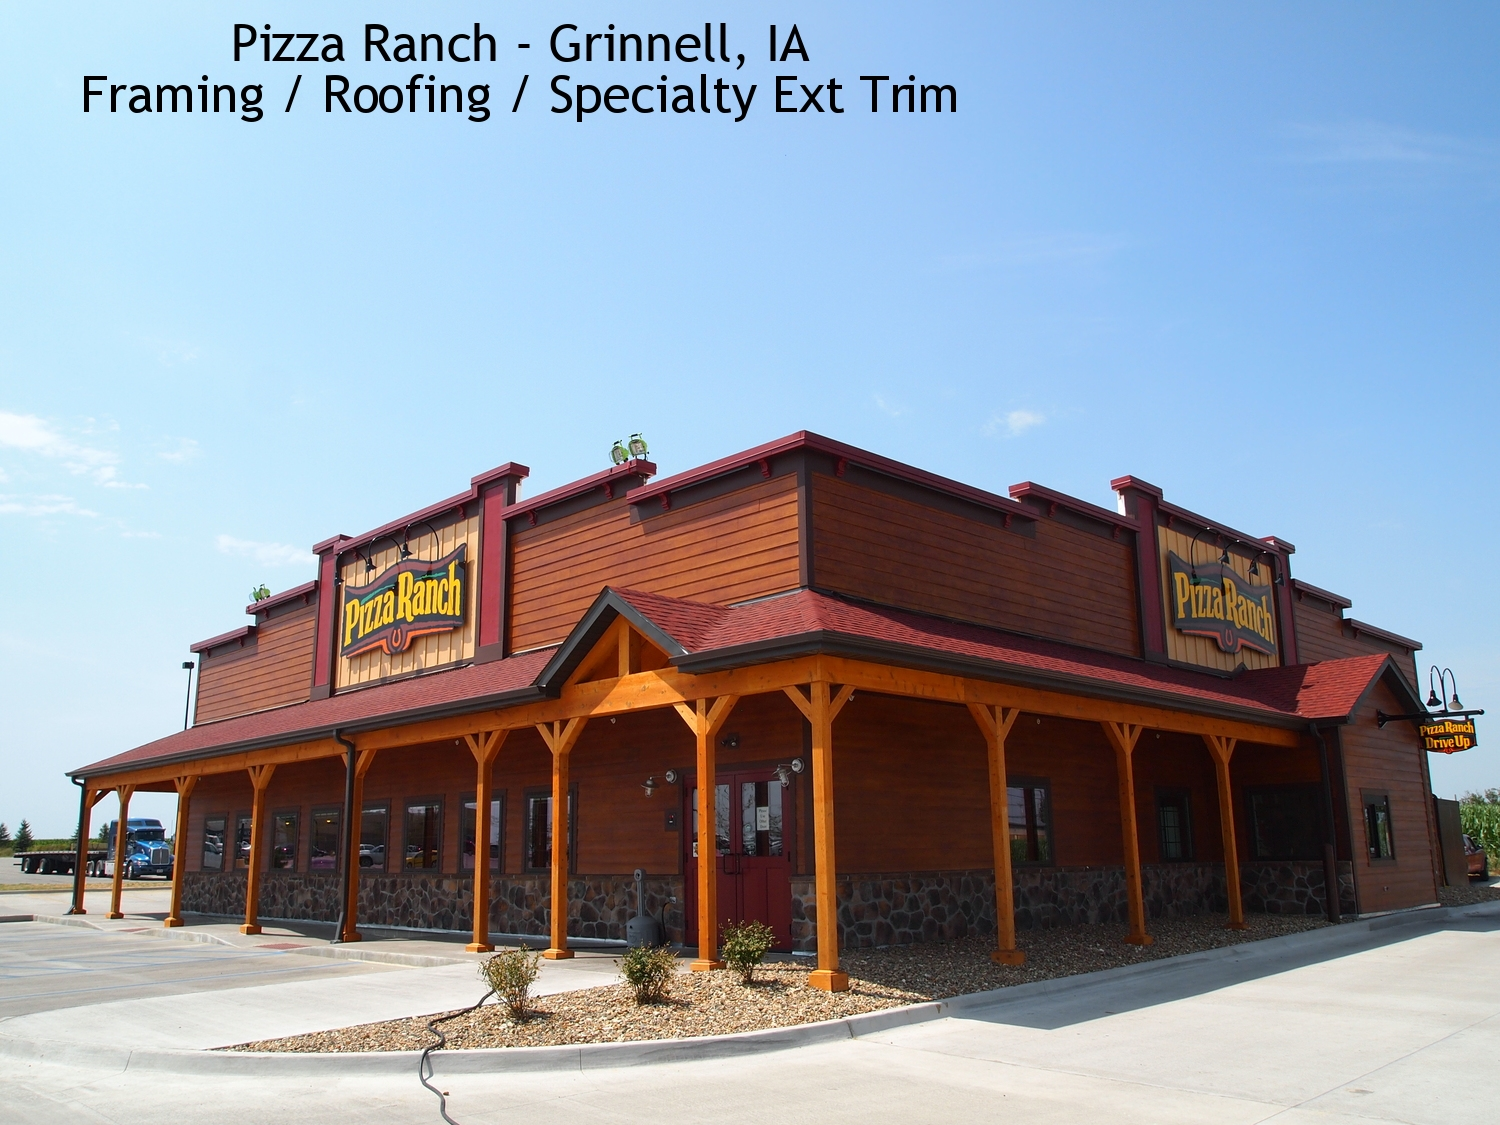 Pizza Ranch Grinnell (1).JPG